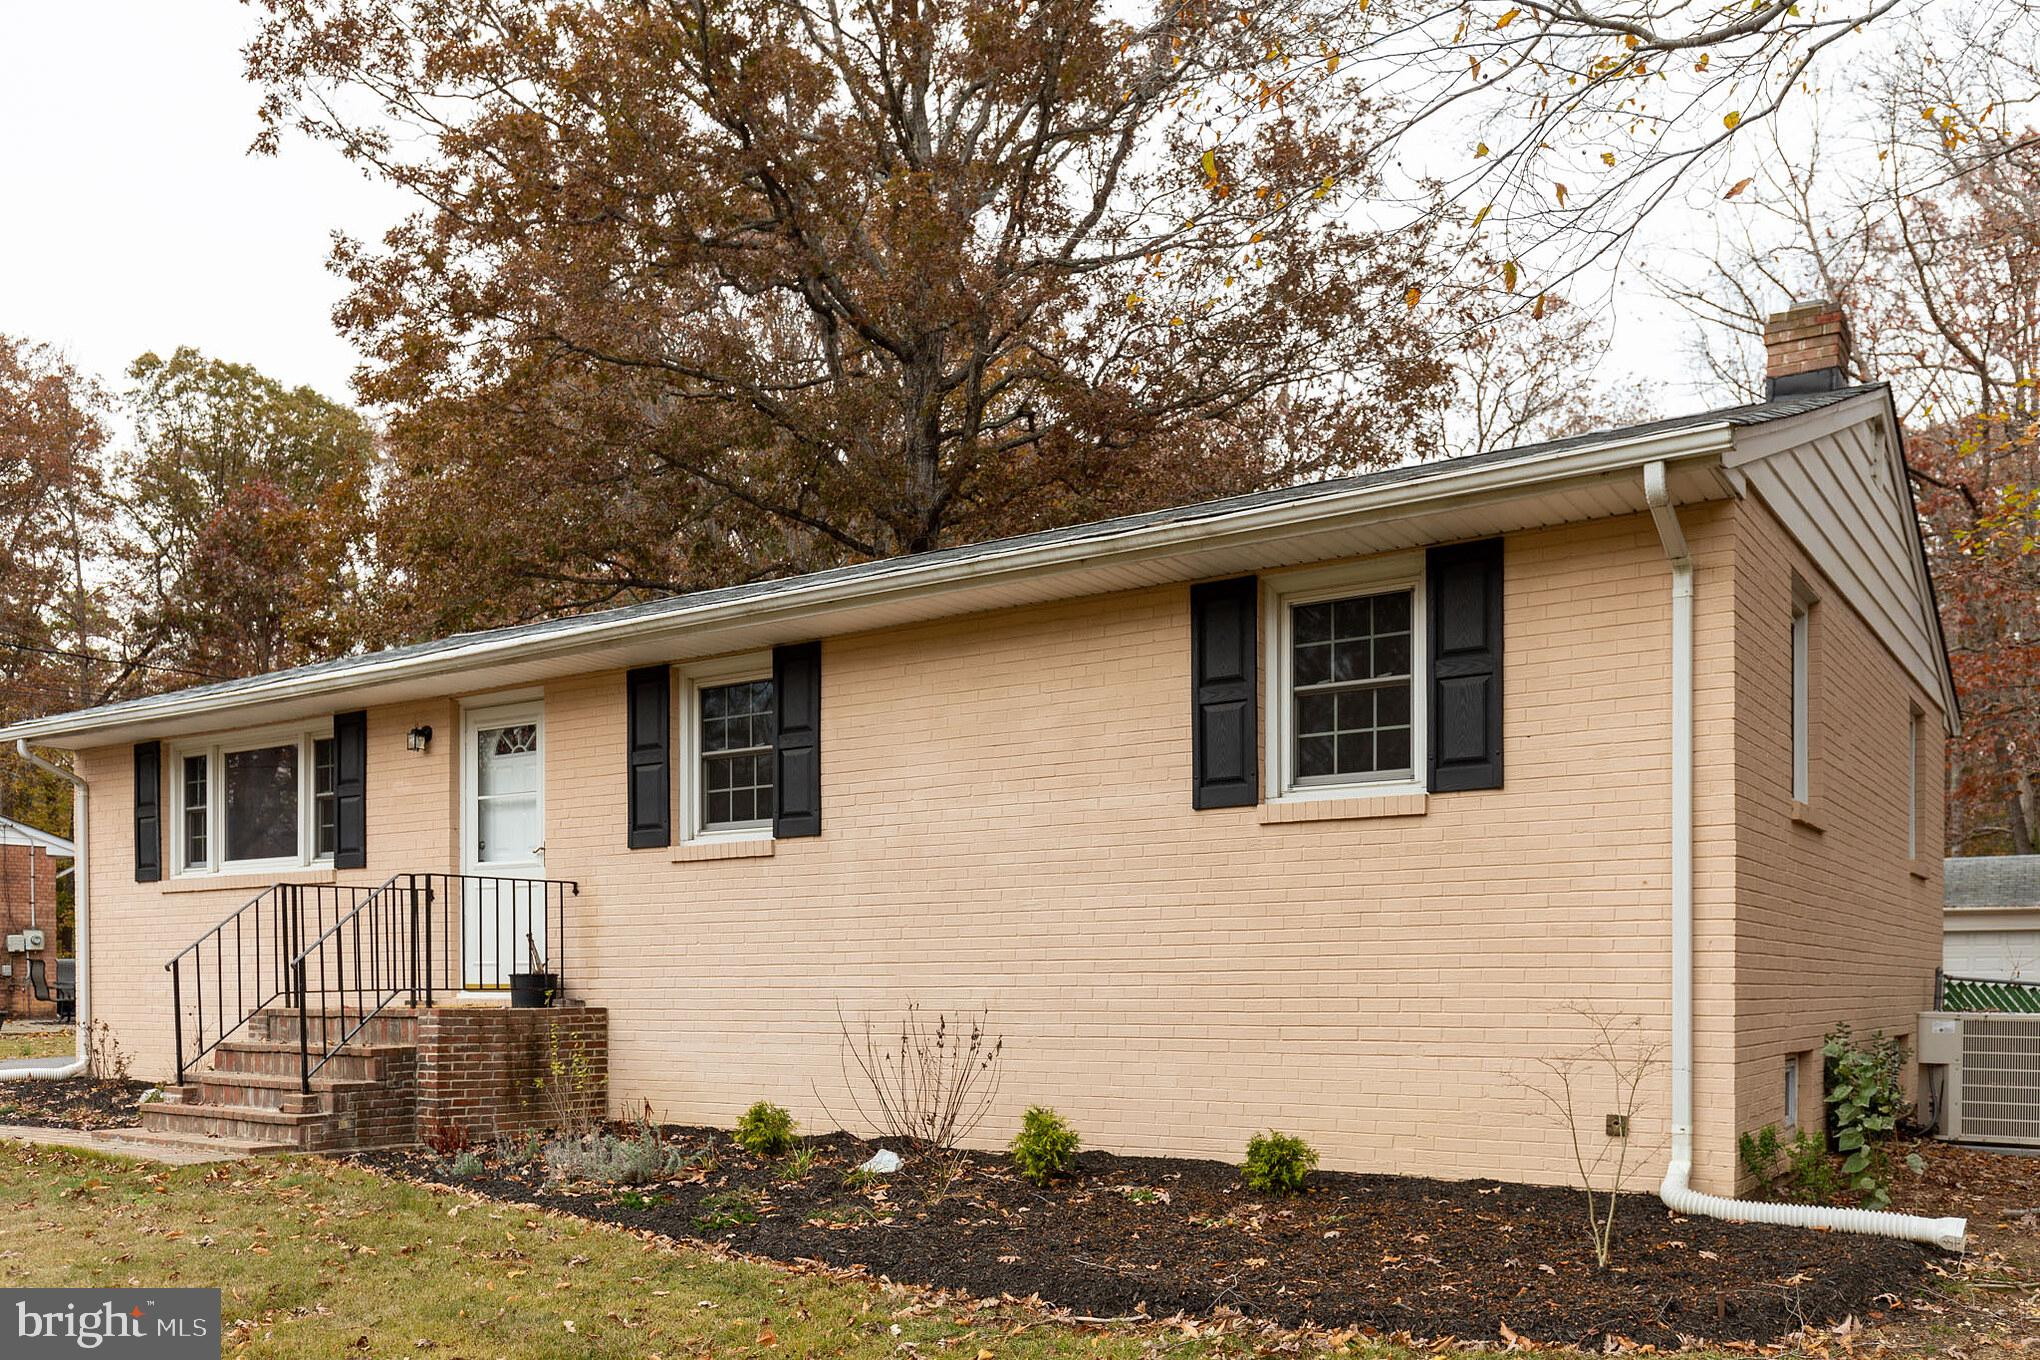 Charming 3 bed 2.5 bath rambler on nearly an acre lot that includes a four car garage with a wood st